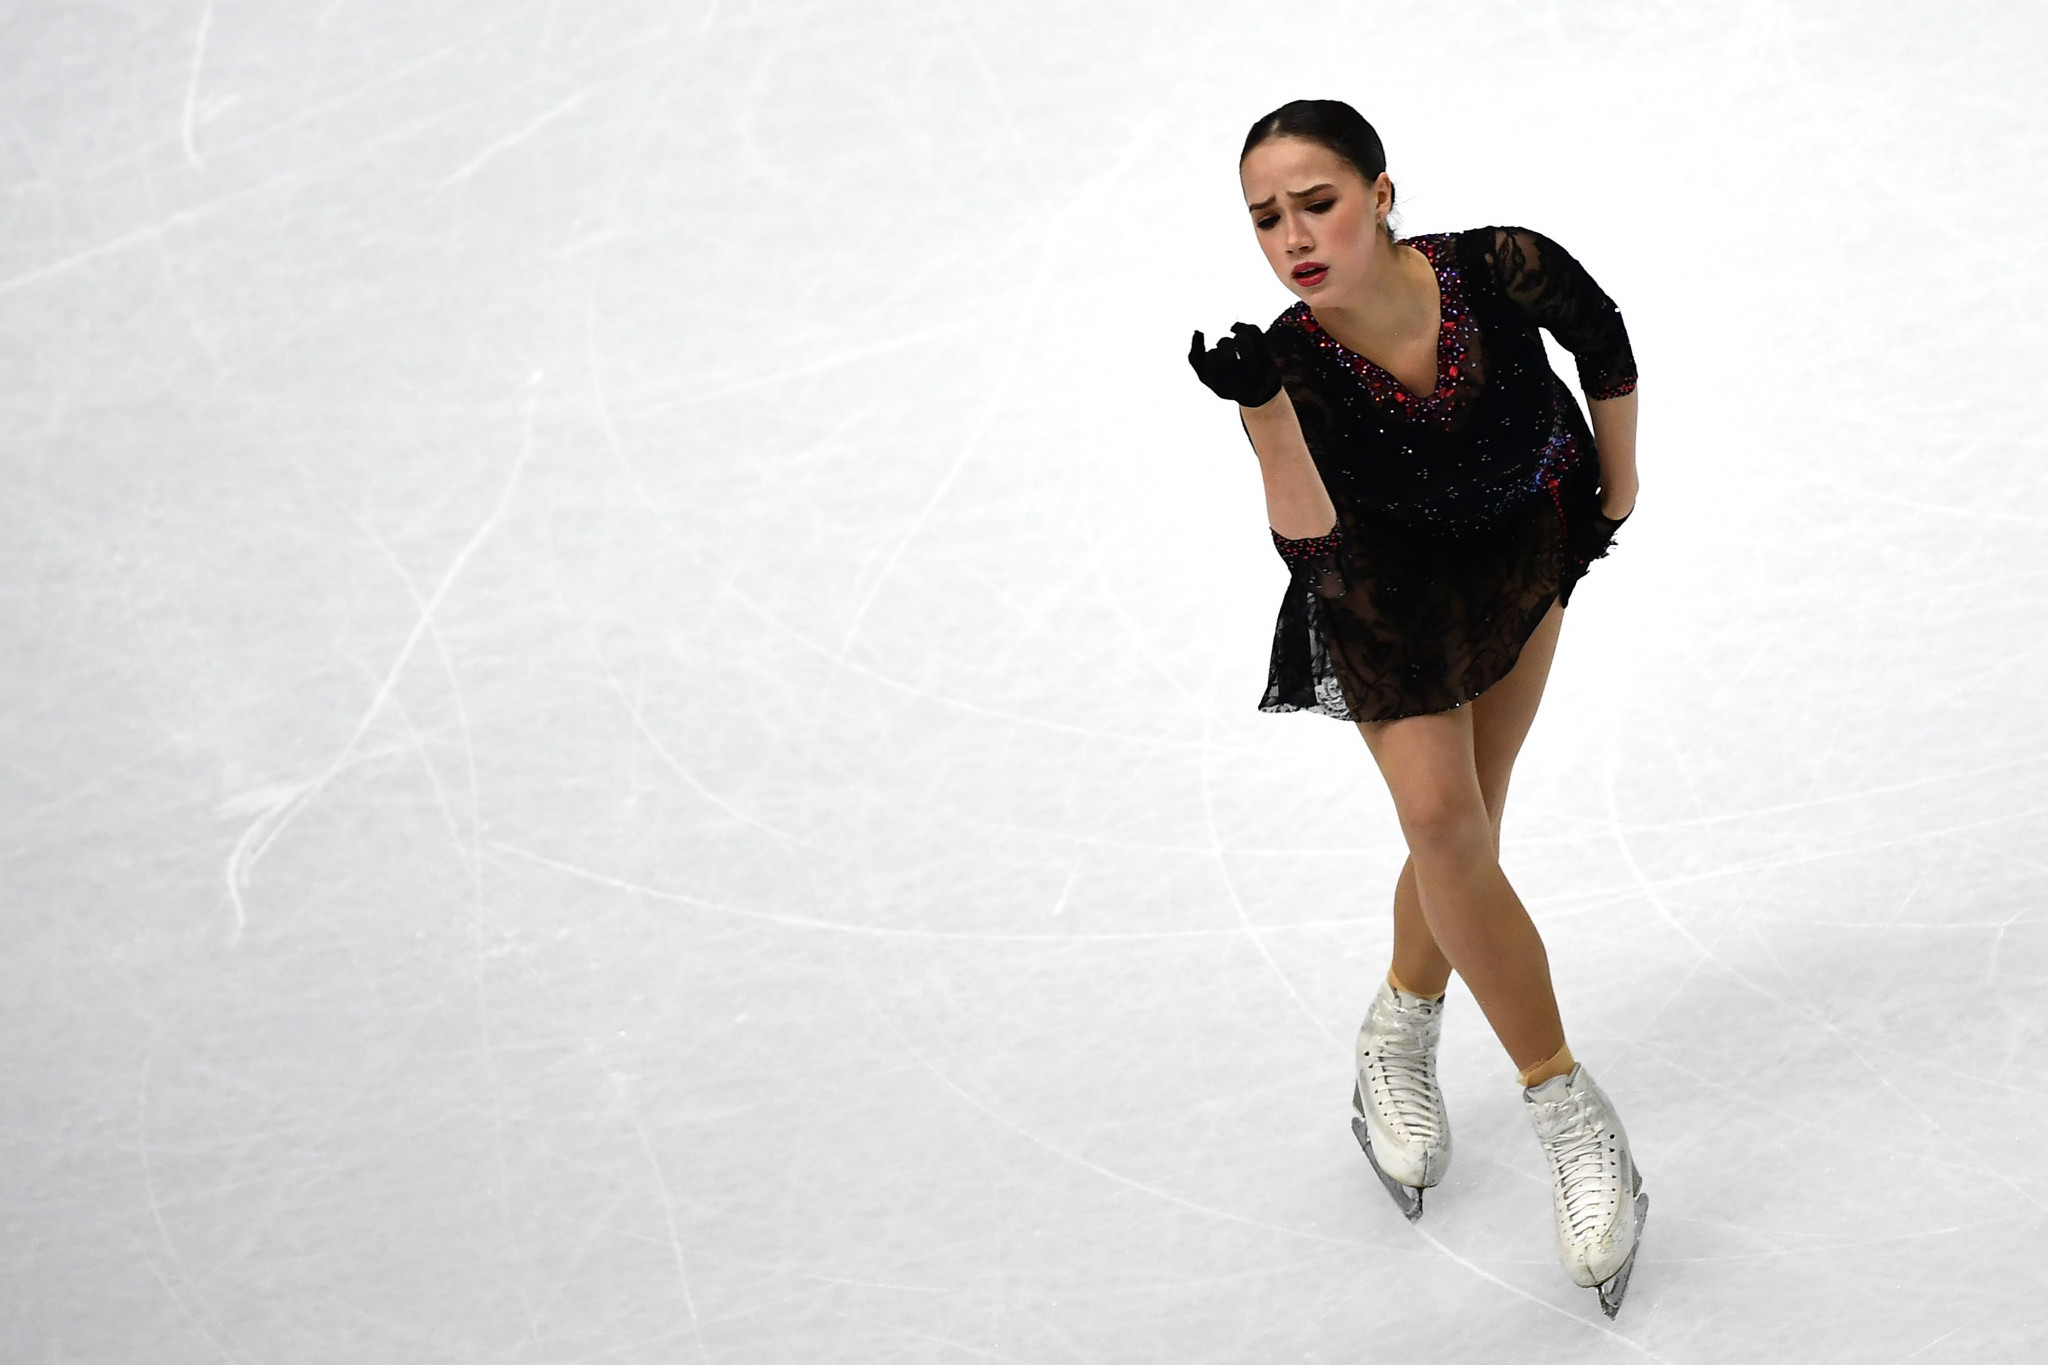 Zagitova rejects retirement rumours after announcing break from figure skating